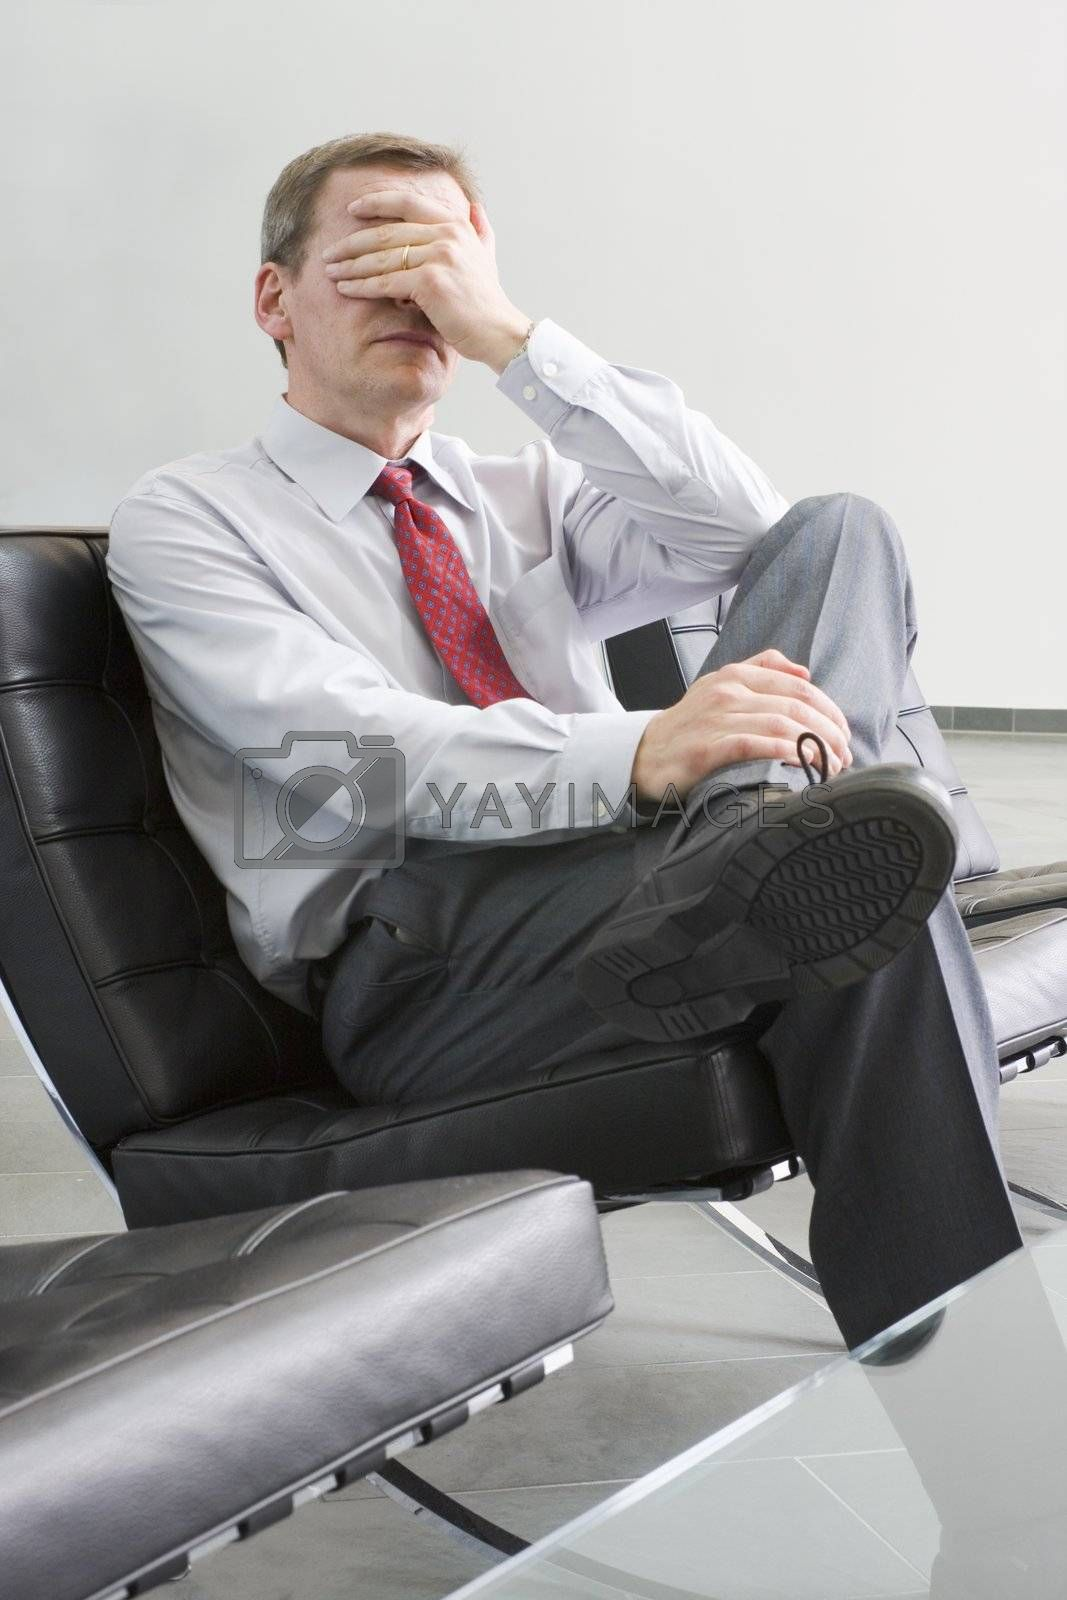 Stressed businessman sitting in a lounge